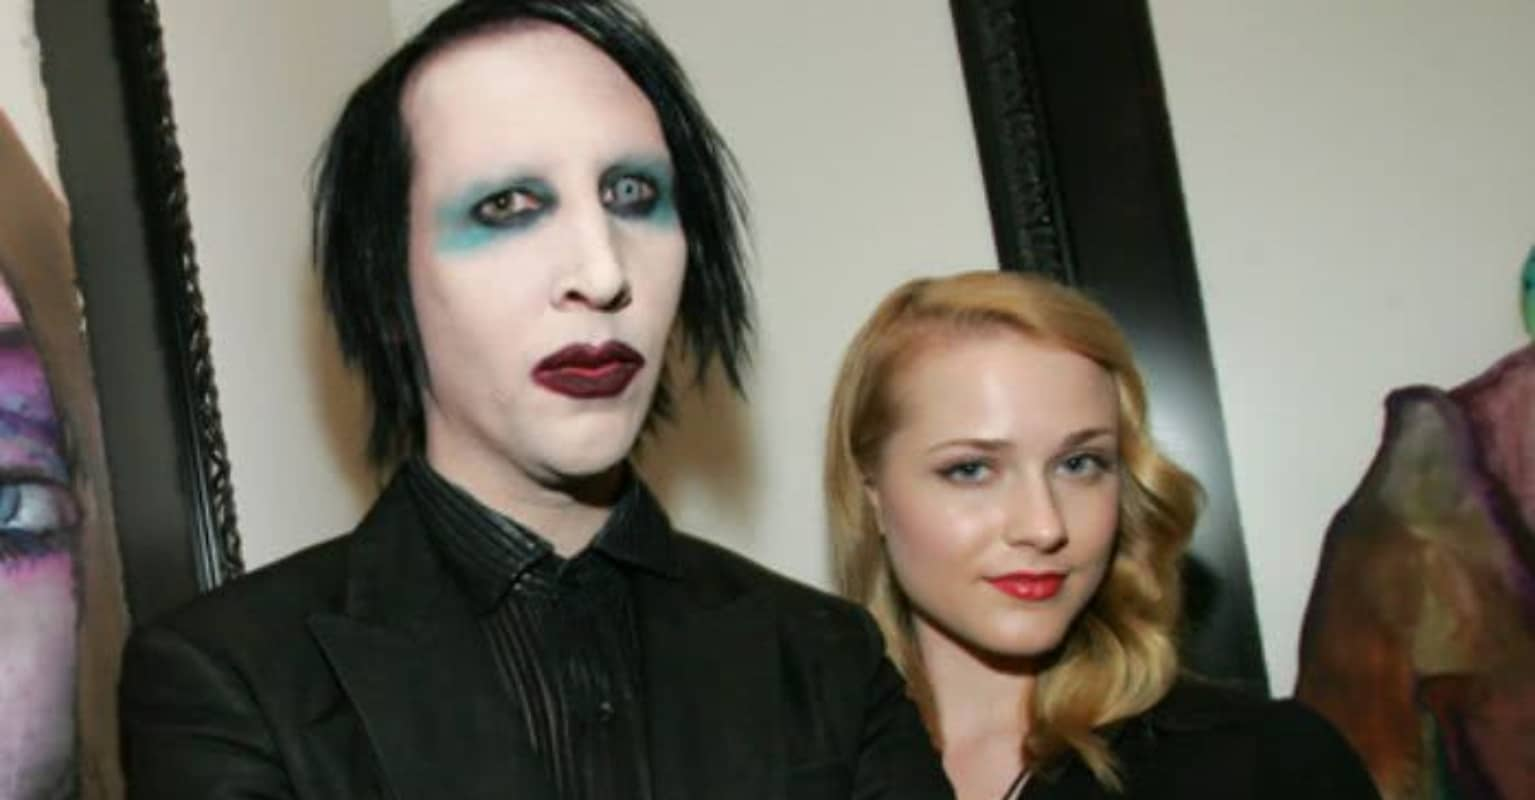 Marilyn Manson dropped from record label and TV appearances after abuse allegations